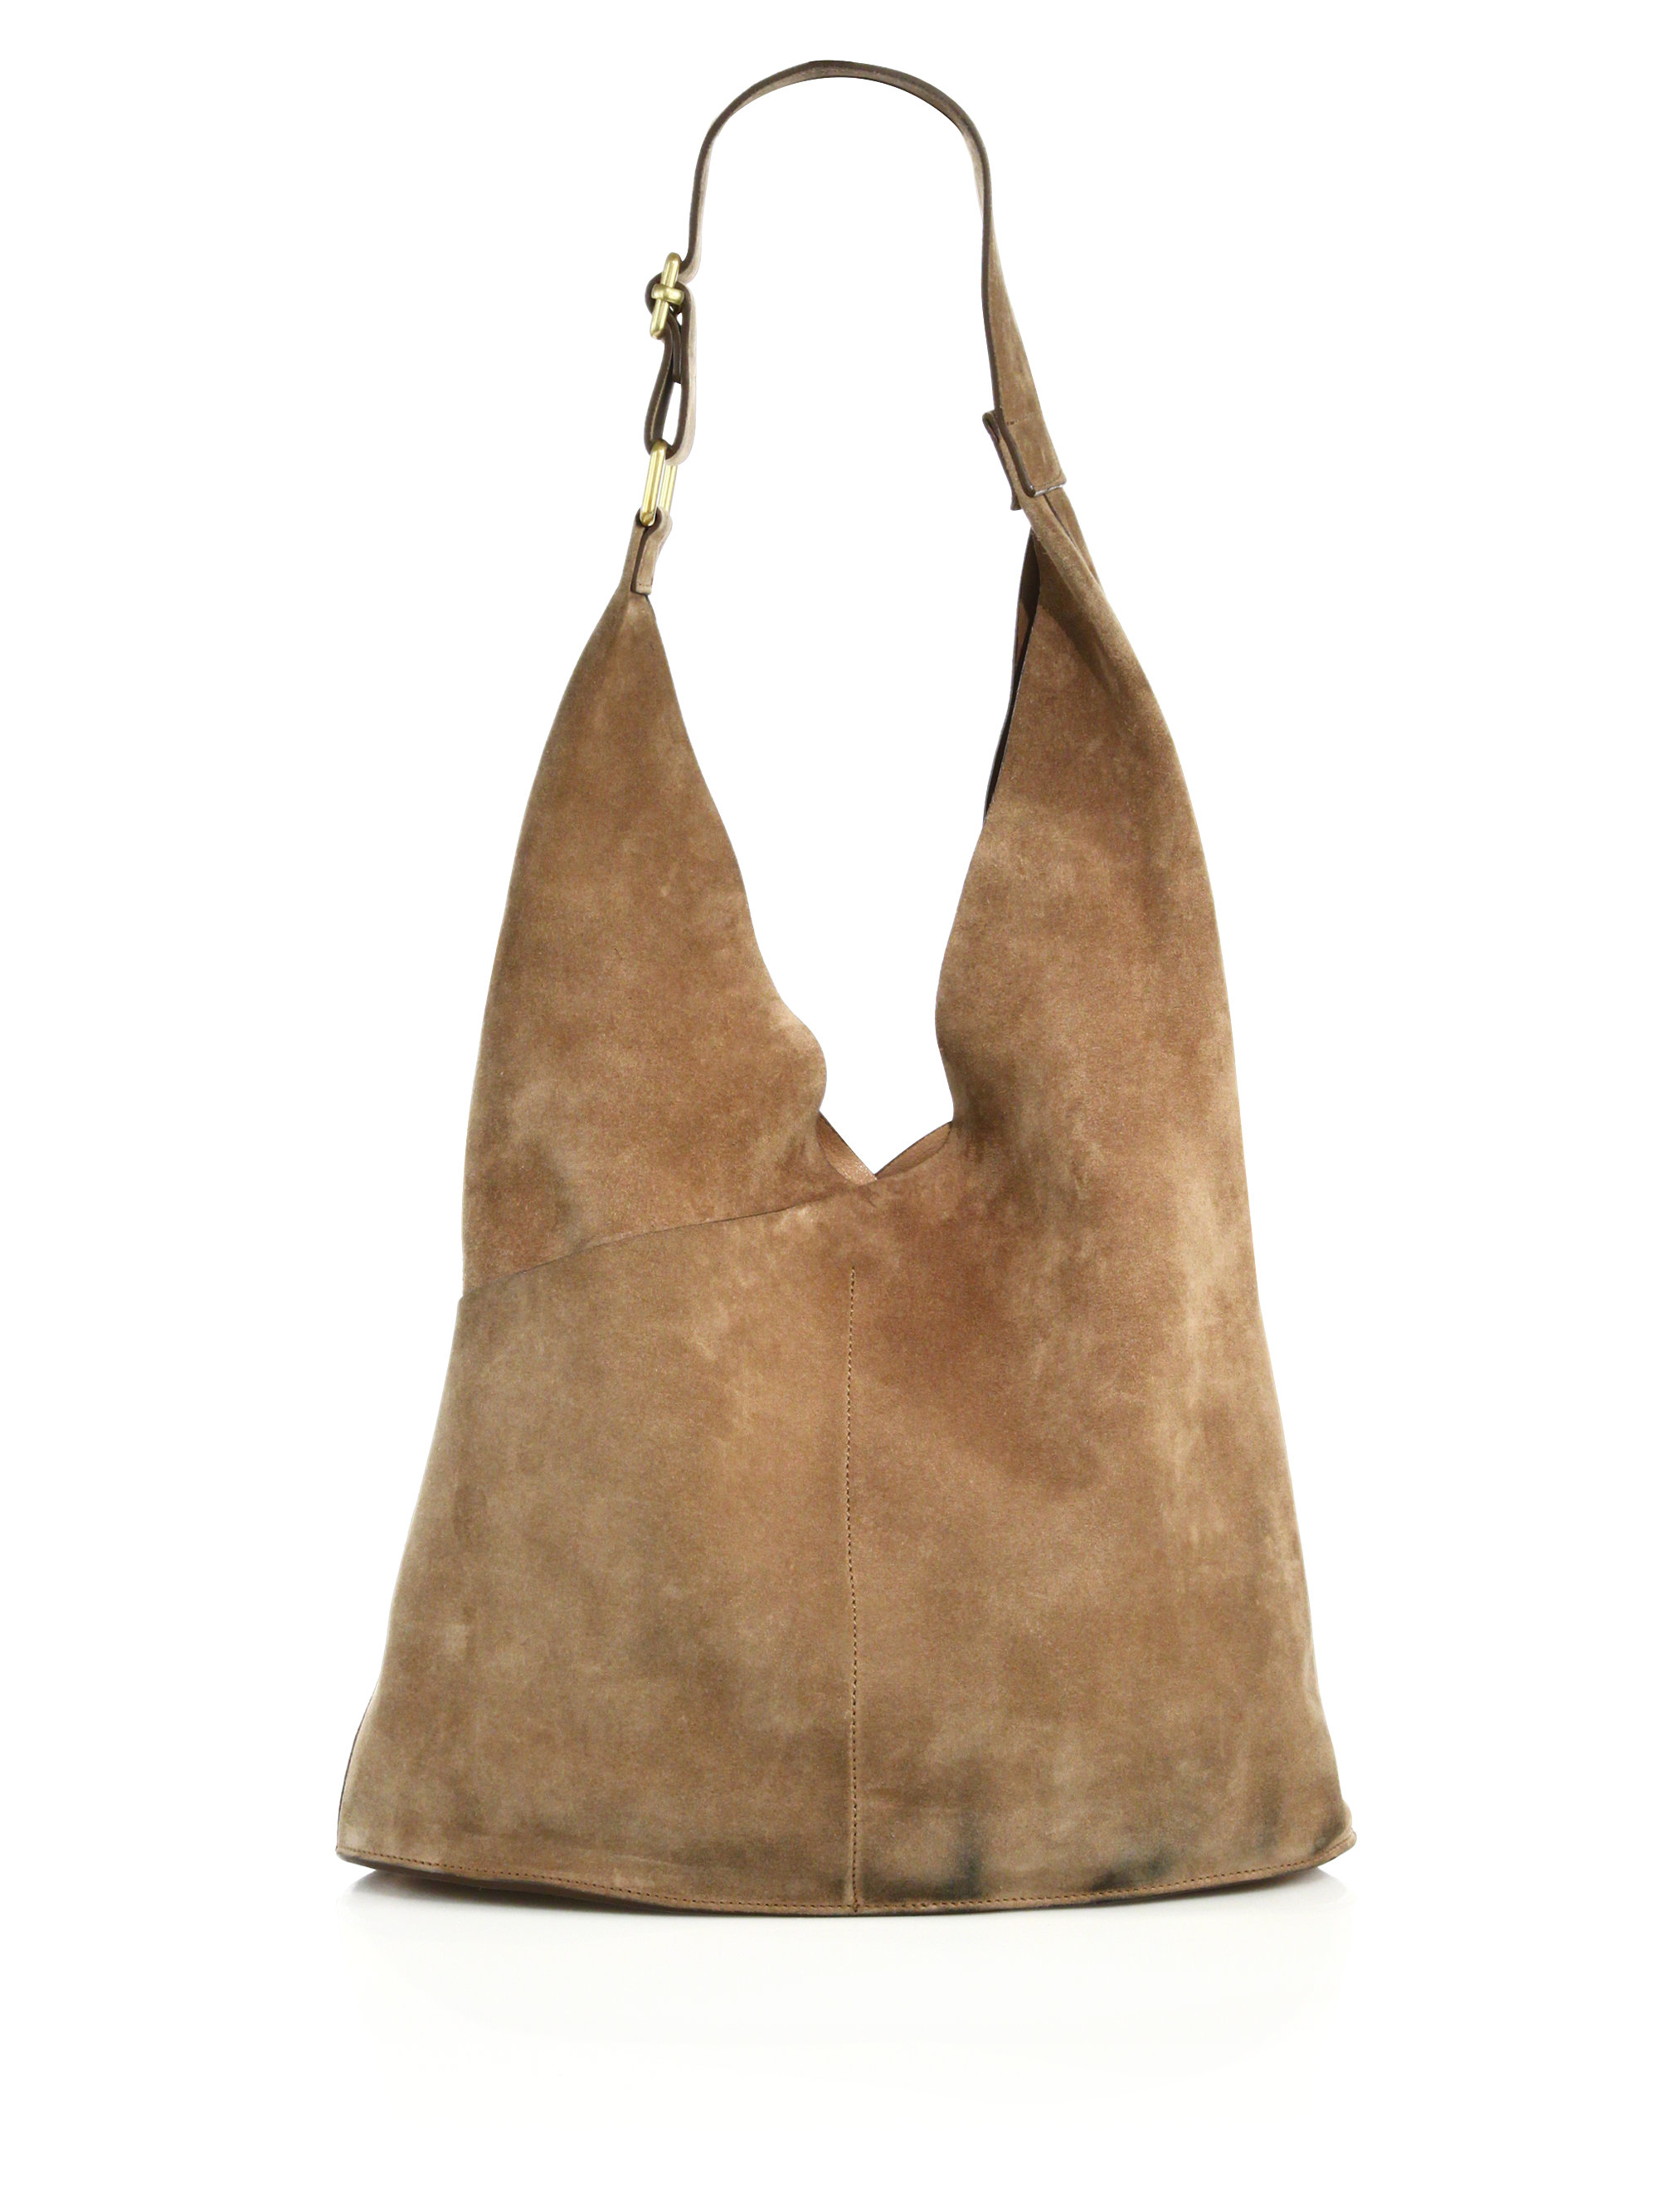 A.l.c. Sadie Suede Hobo Bag in Natural | Lyst